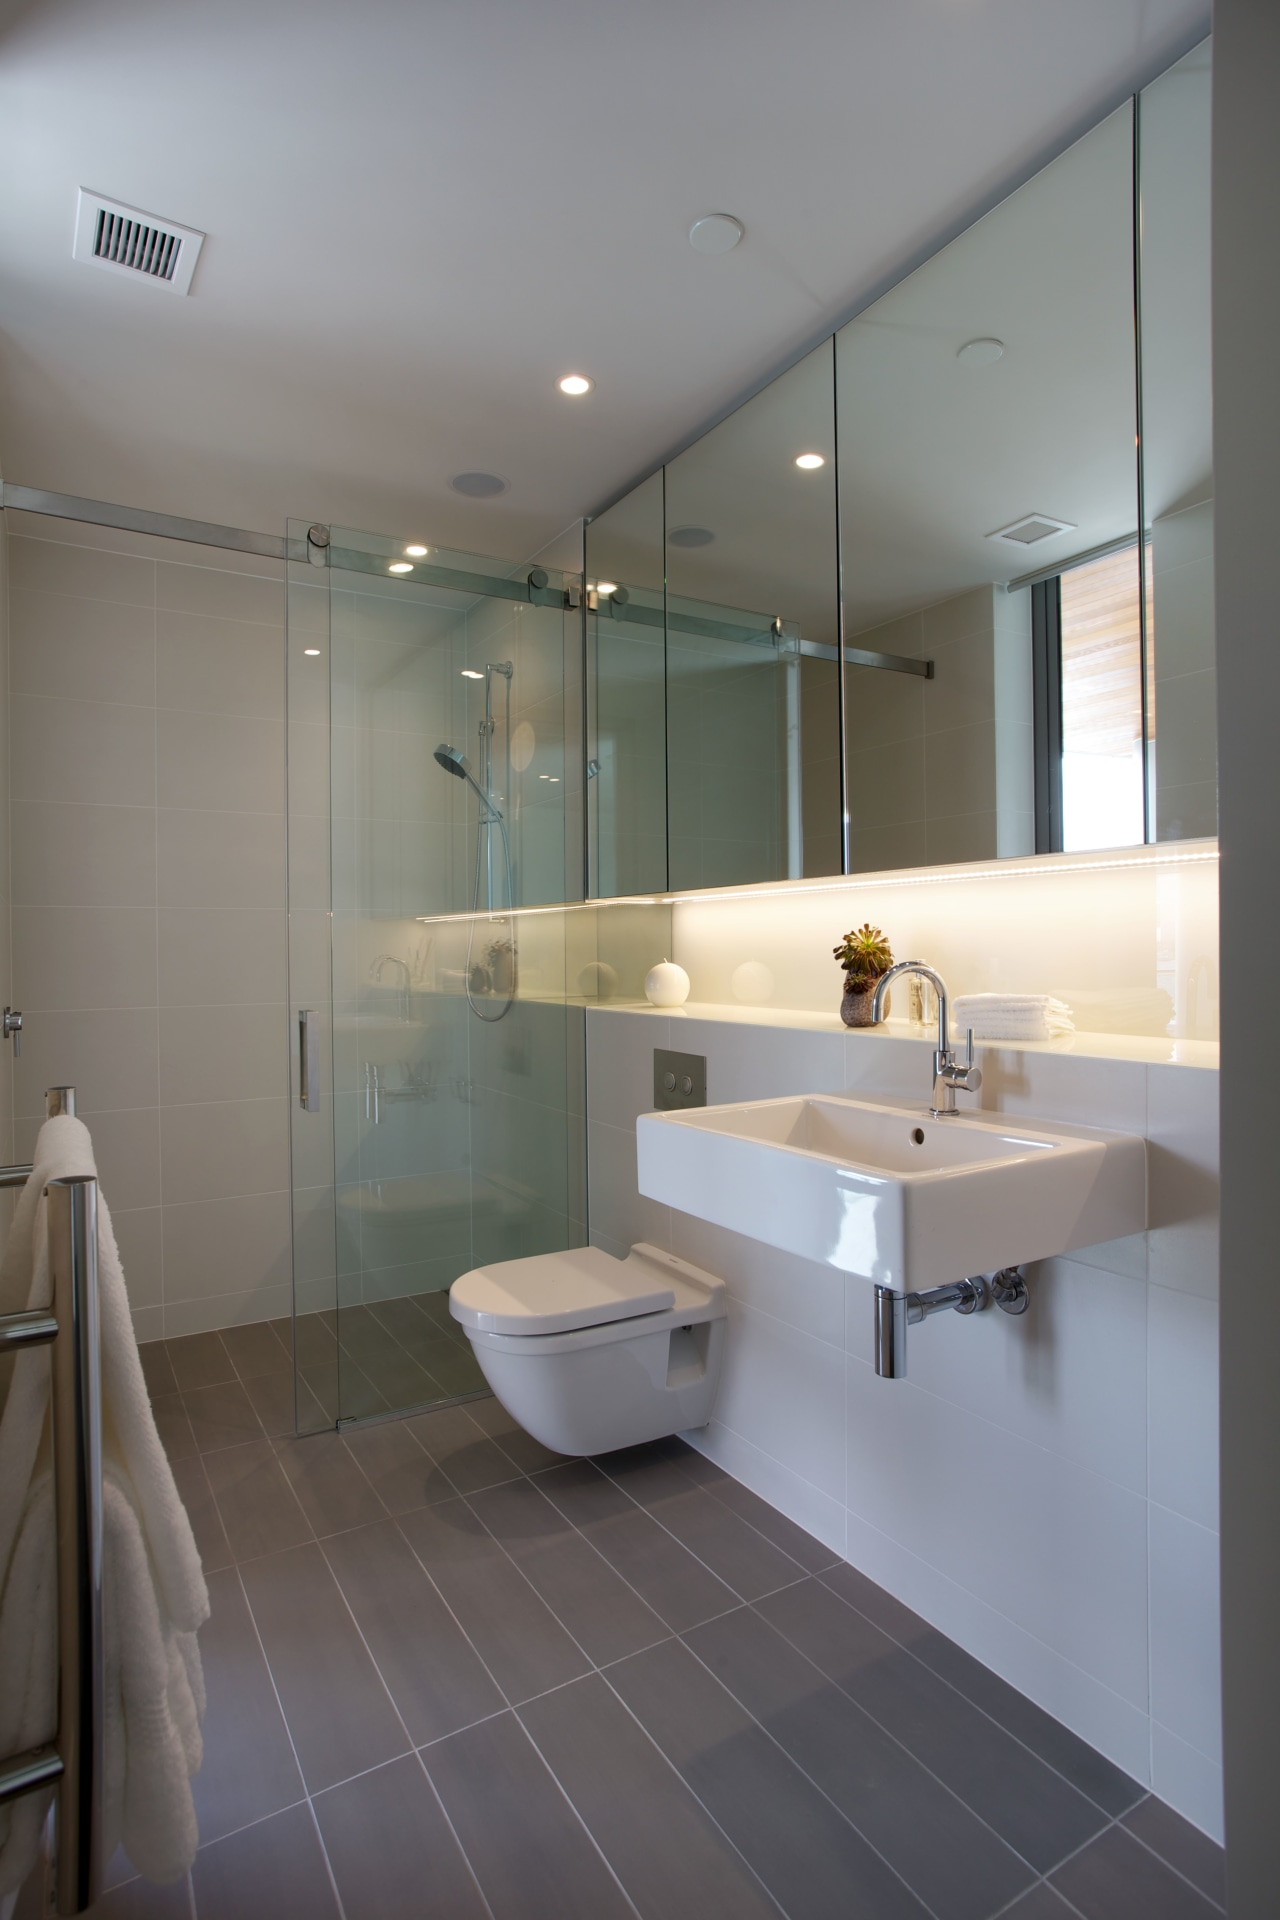 Contemporary tile bathrooms are a feature of the architecture, bathroom, floor, home, interior design, plumbing fixture, product design, room, sink, tap, tile, gray